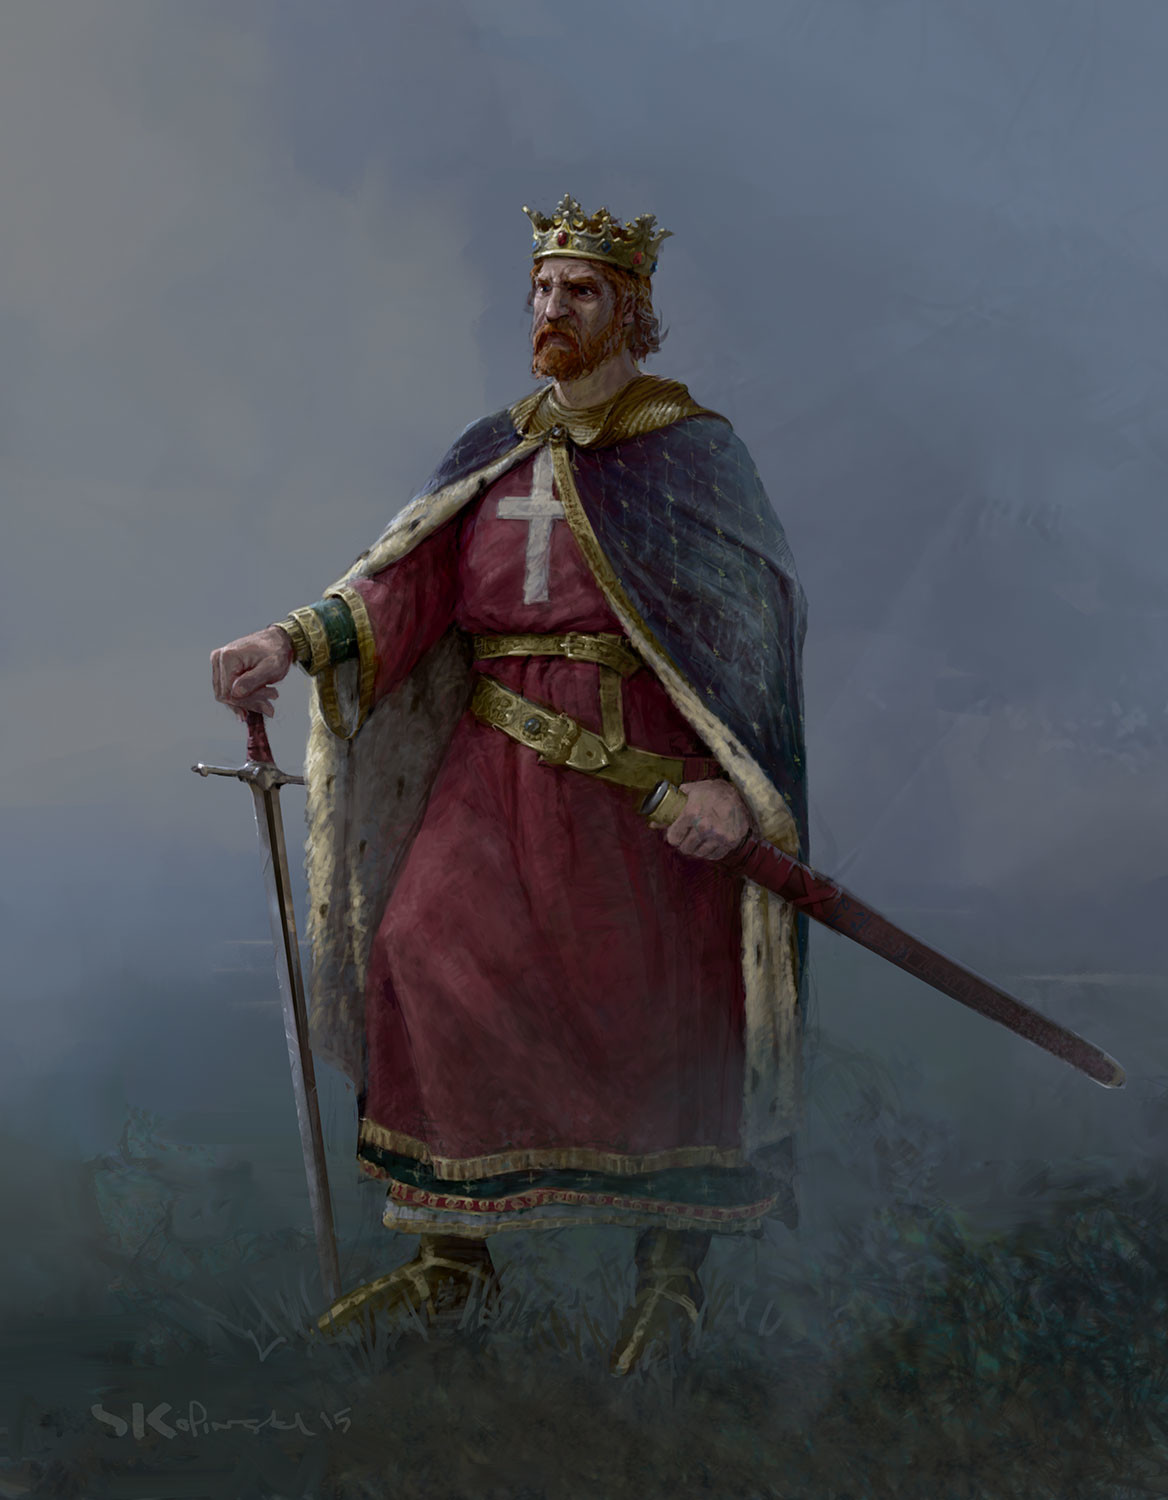 King Richard The Lionheart